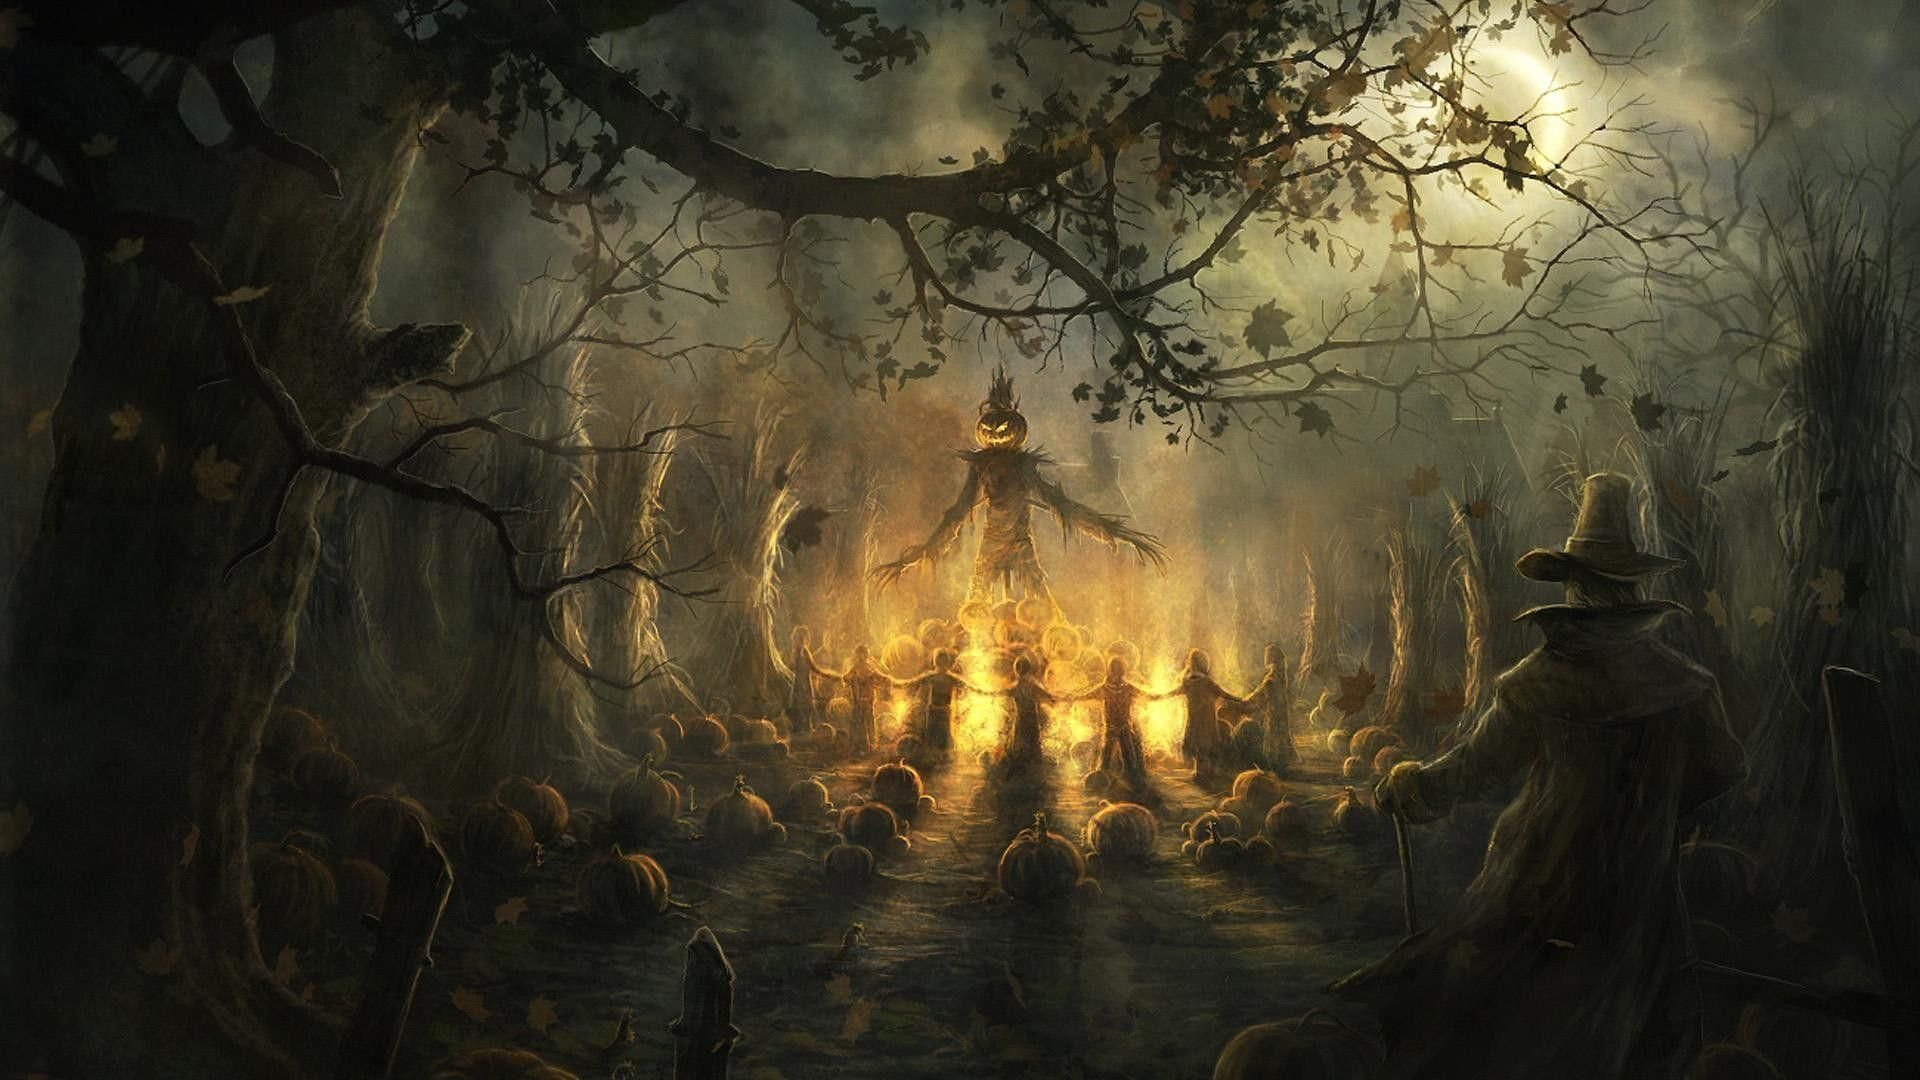 Halloween Hd Wallpapers 1080p Hd Wallpapers Inn Halloween Images Halloween Backgrounds Halloween Desktop Wallpaper